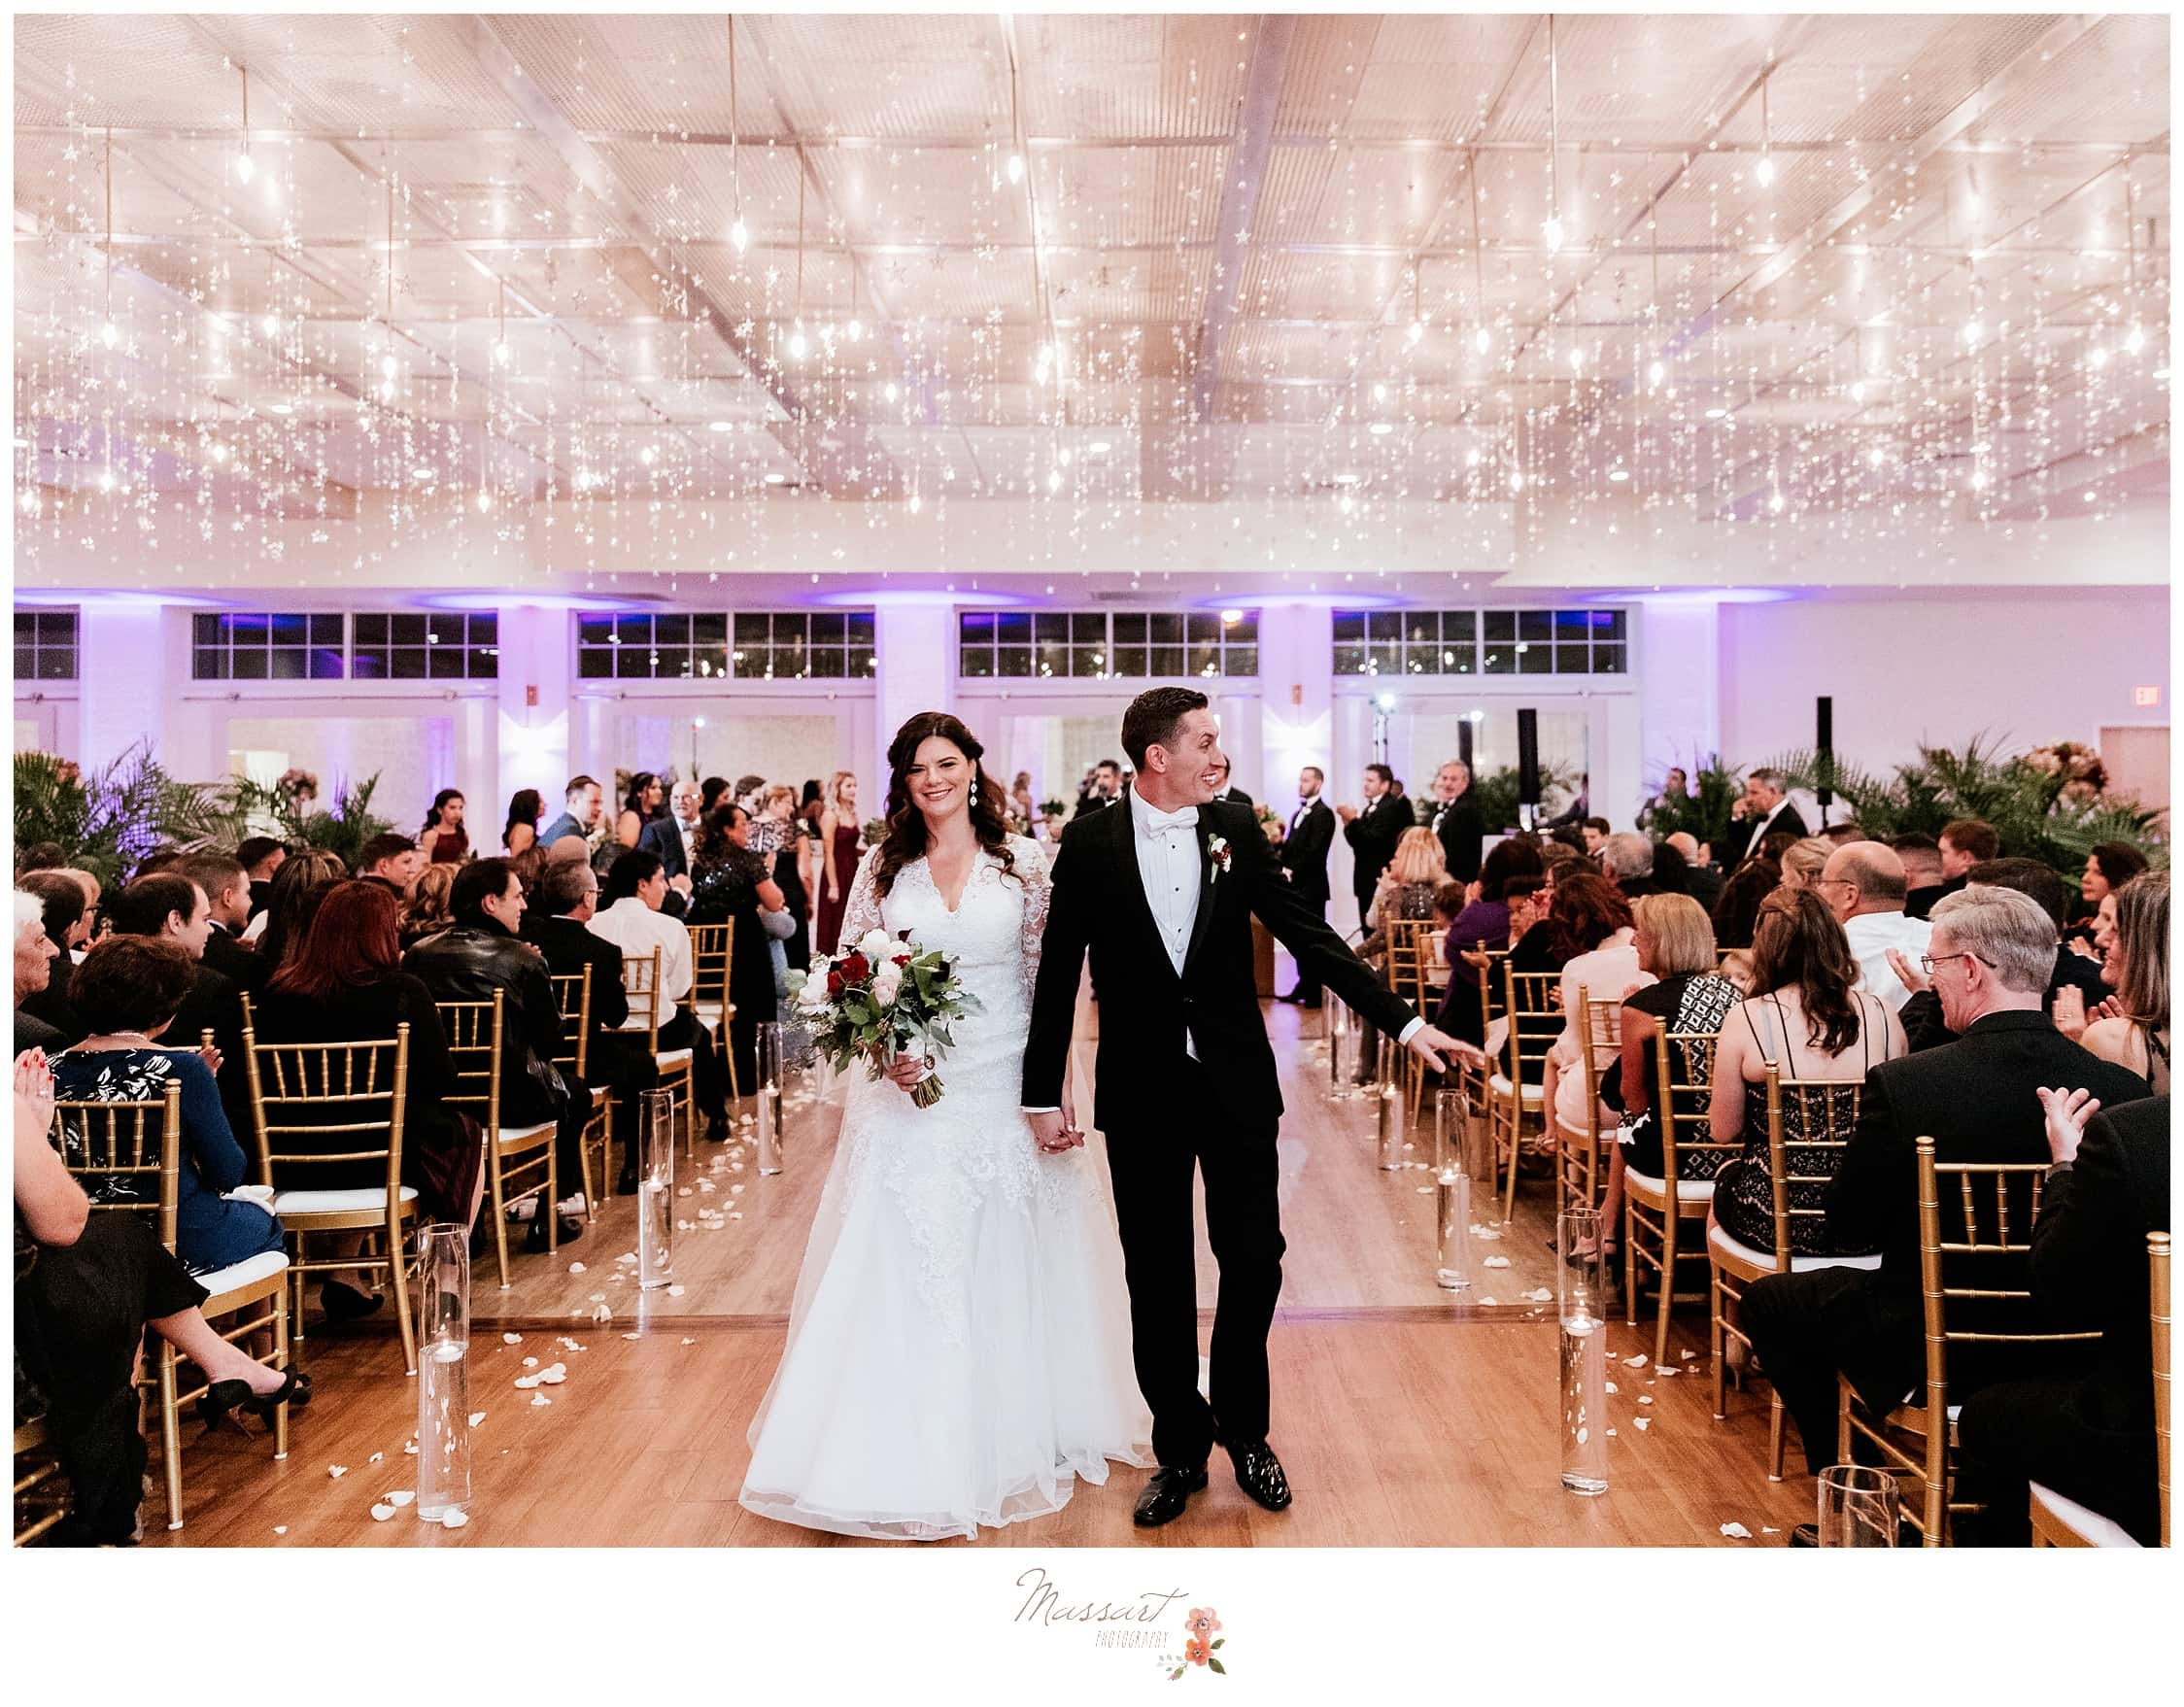 Couple exits after wedding ceremony at the atlantic resort in RI and is captured by massart photographers